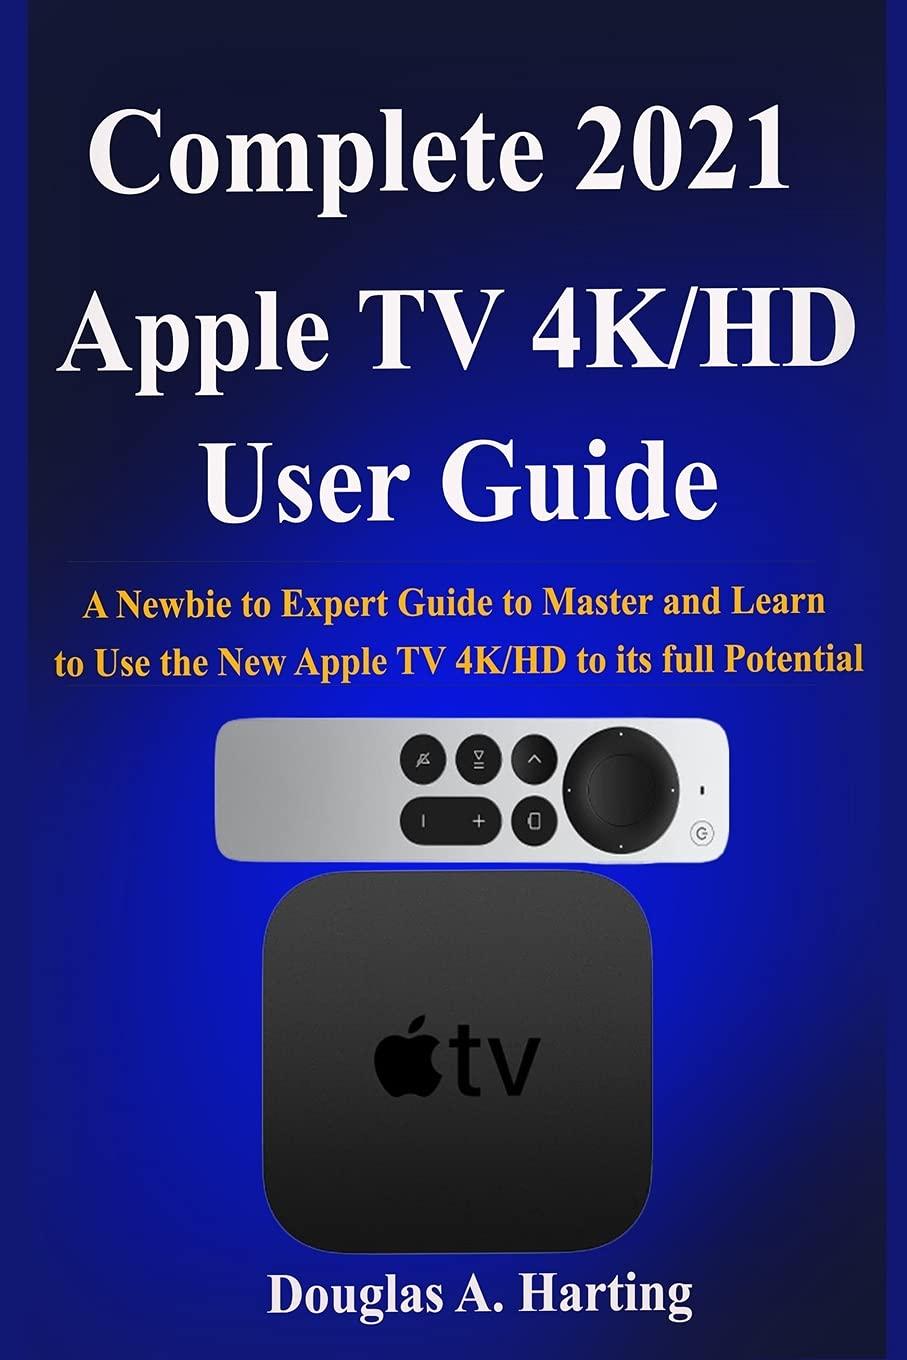 Complete 2021 Apple TV 4k/HD User Guide: A Newbie to Expert Guide to Master  and Learn to Use the New Apple TV 4K/HD to its full Potential: Harting,  Douglas A.: 9798517036056: Amazon.com: